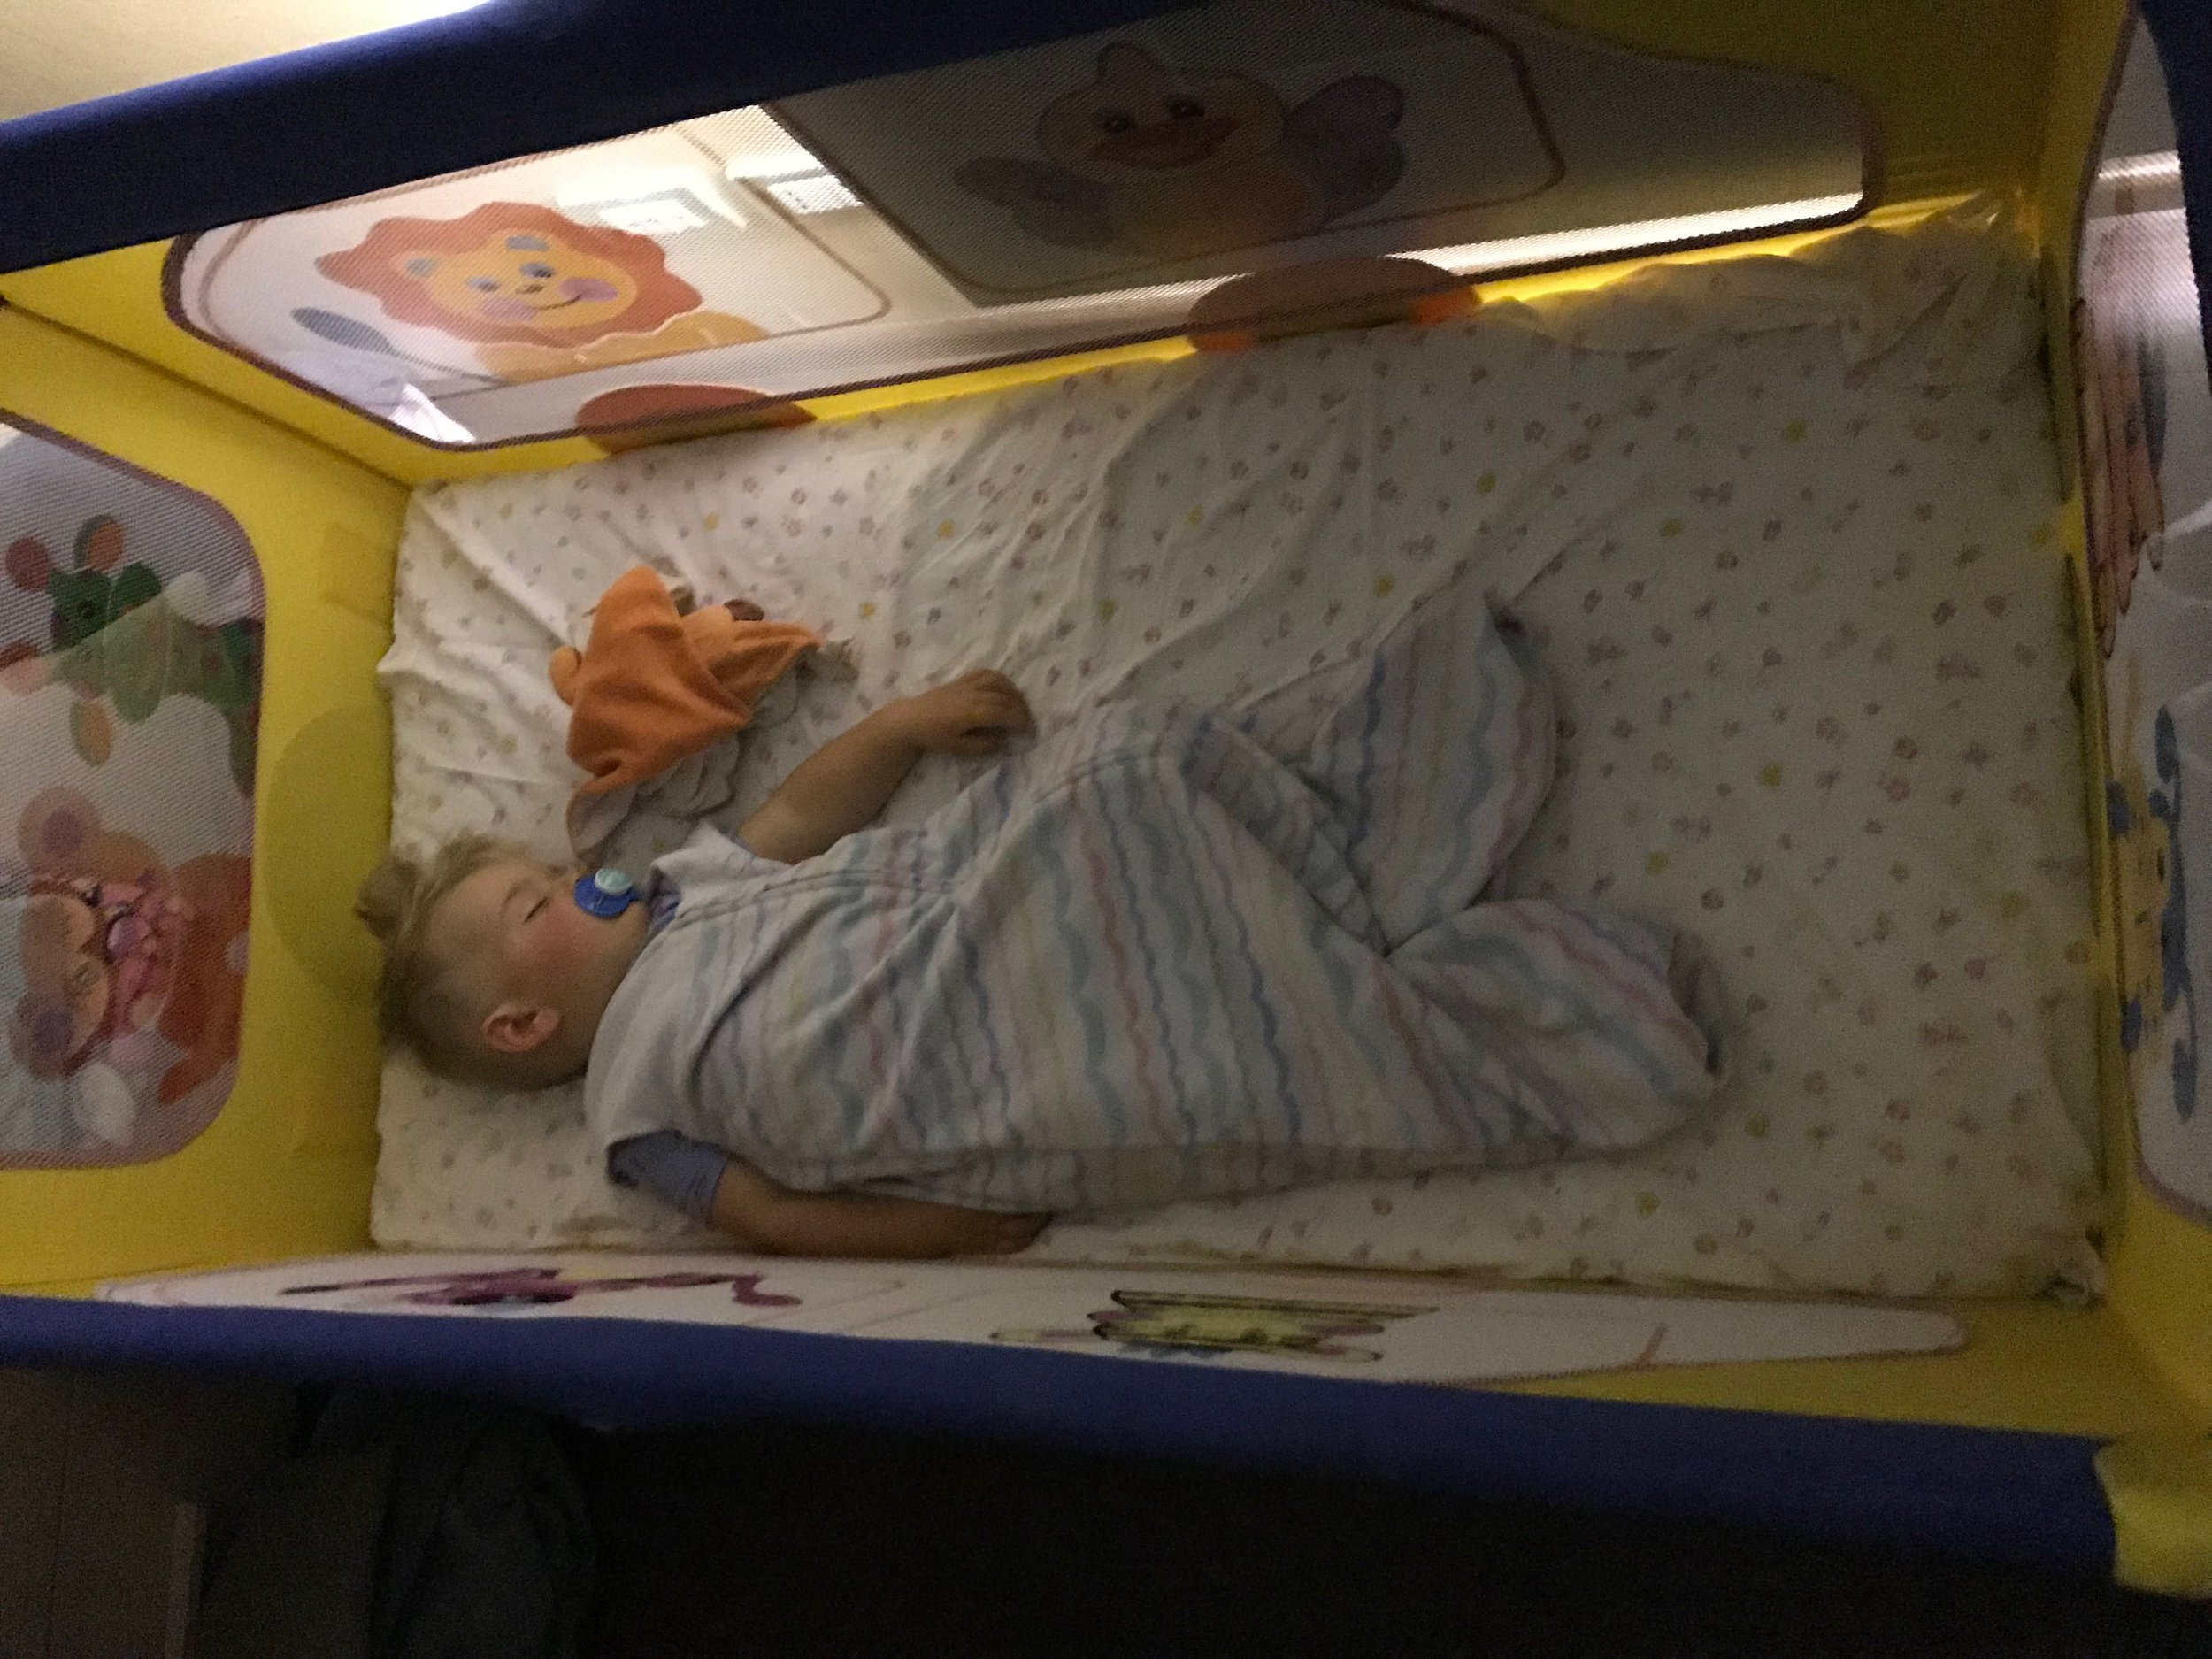 Latham in an arranged baby cot in Milan, italy